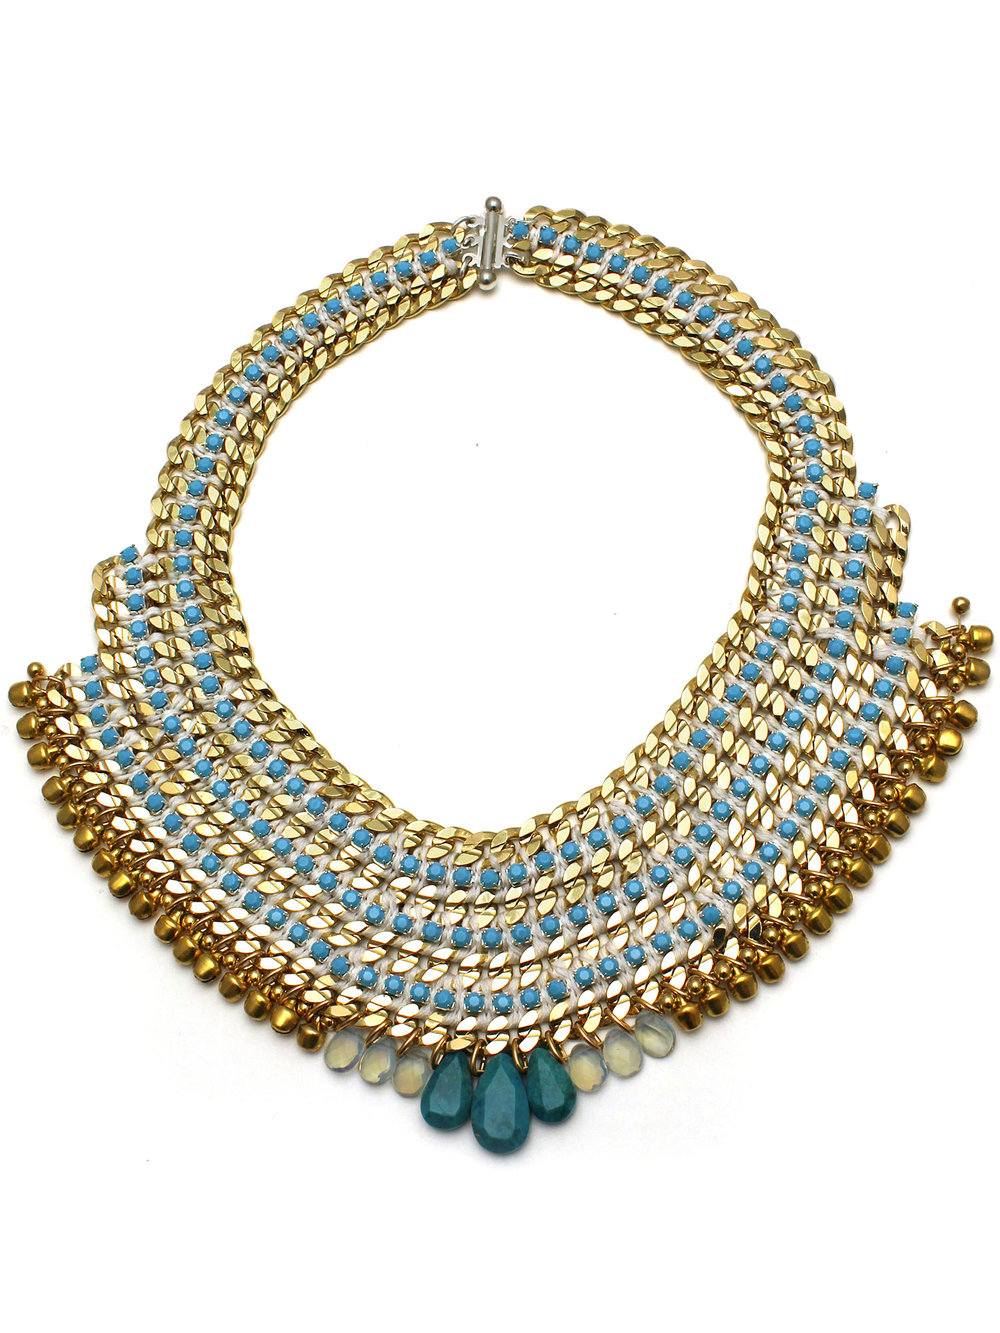 078 Turquoise & White Bell Necklace.jpg